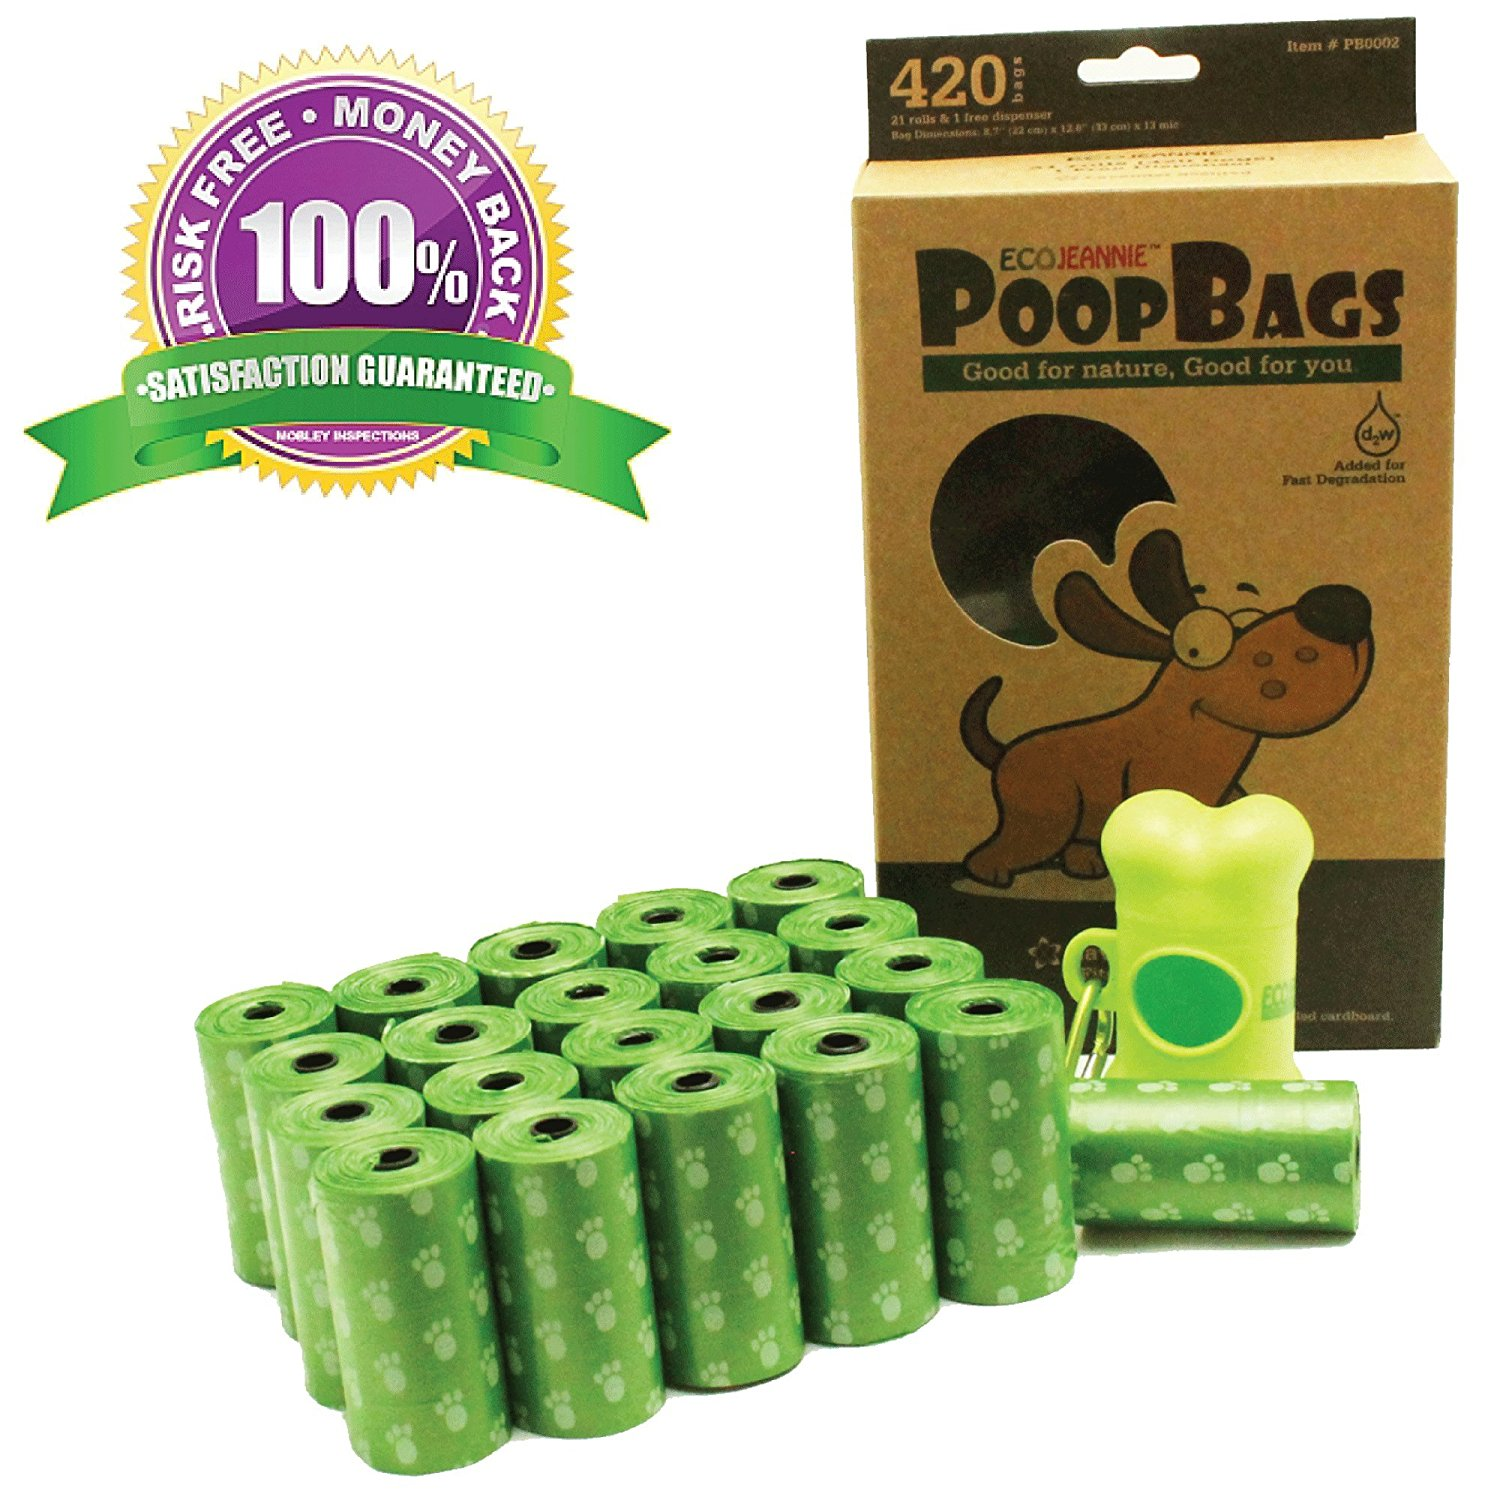 EcoJeannie® 420-Count Dog Poop Bags (21 Rolls) w/ Dispenser, Dog Waste Bags, Lavender Scented, 21 Refill Rolls + Dispenser with Stainlee Steel Carabiner Clip